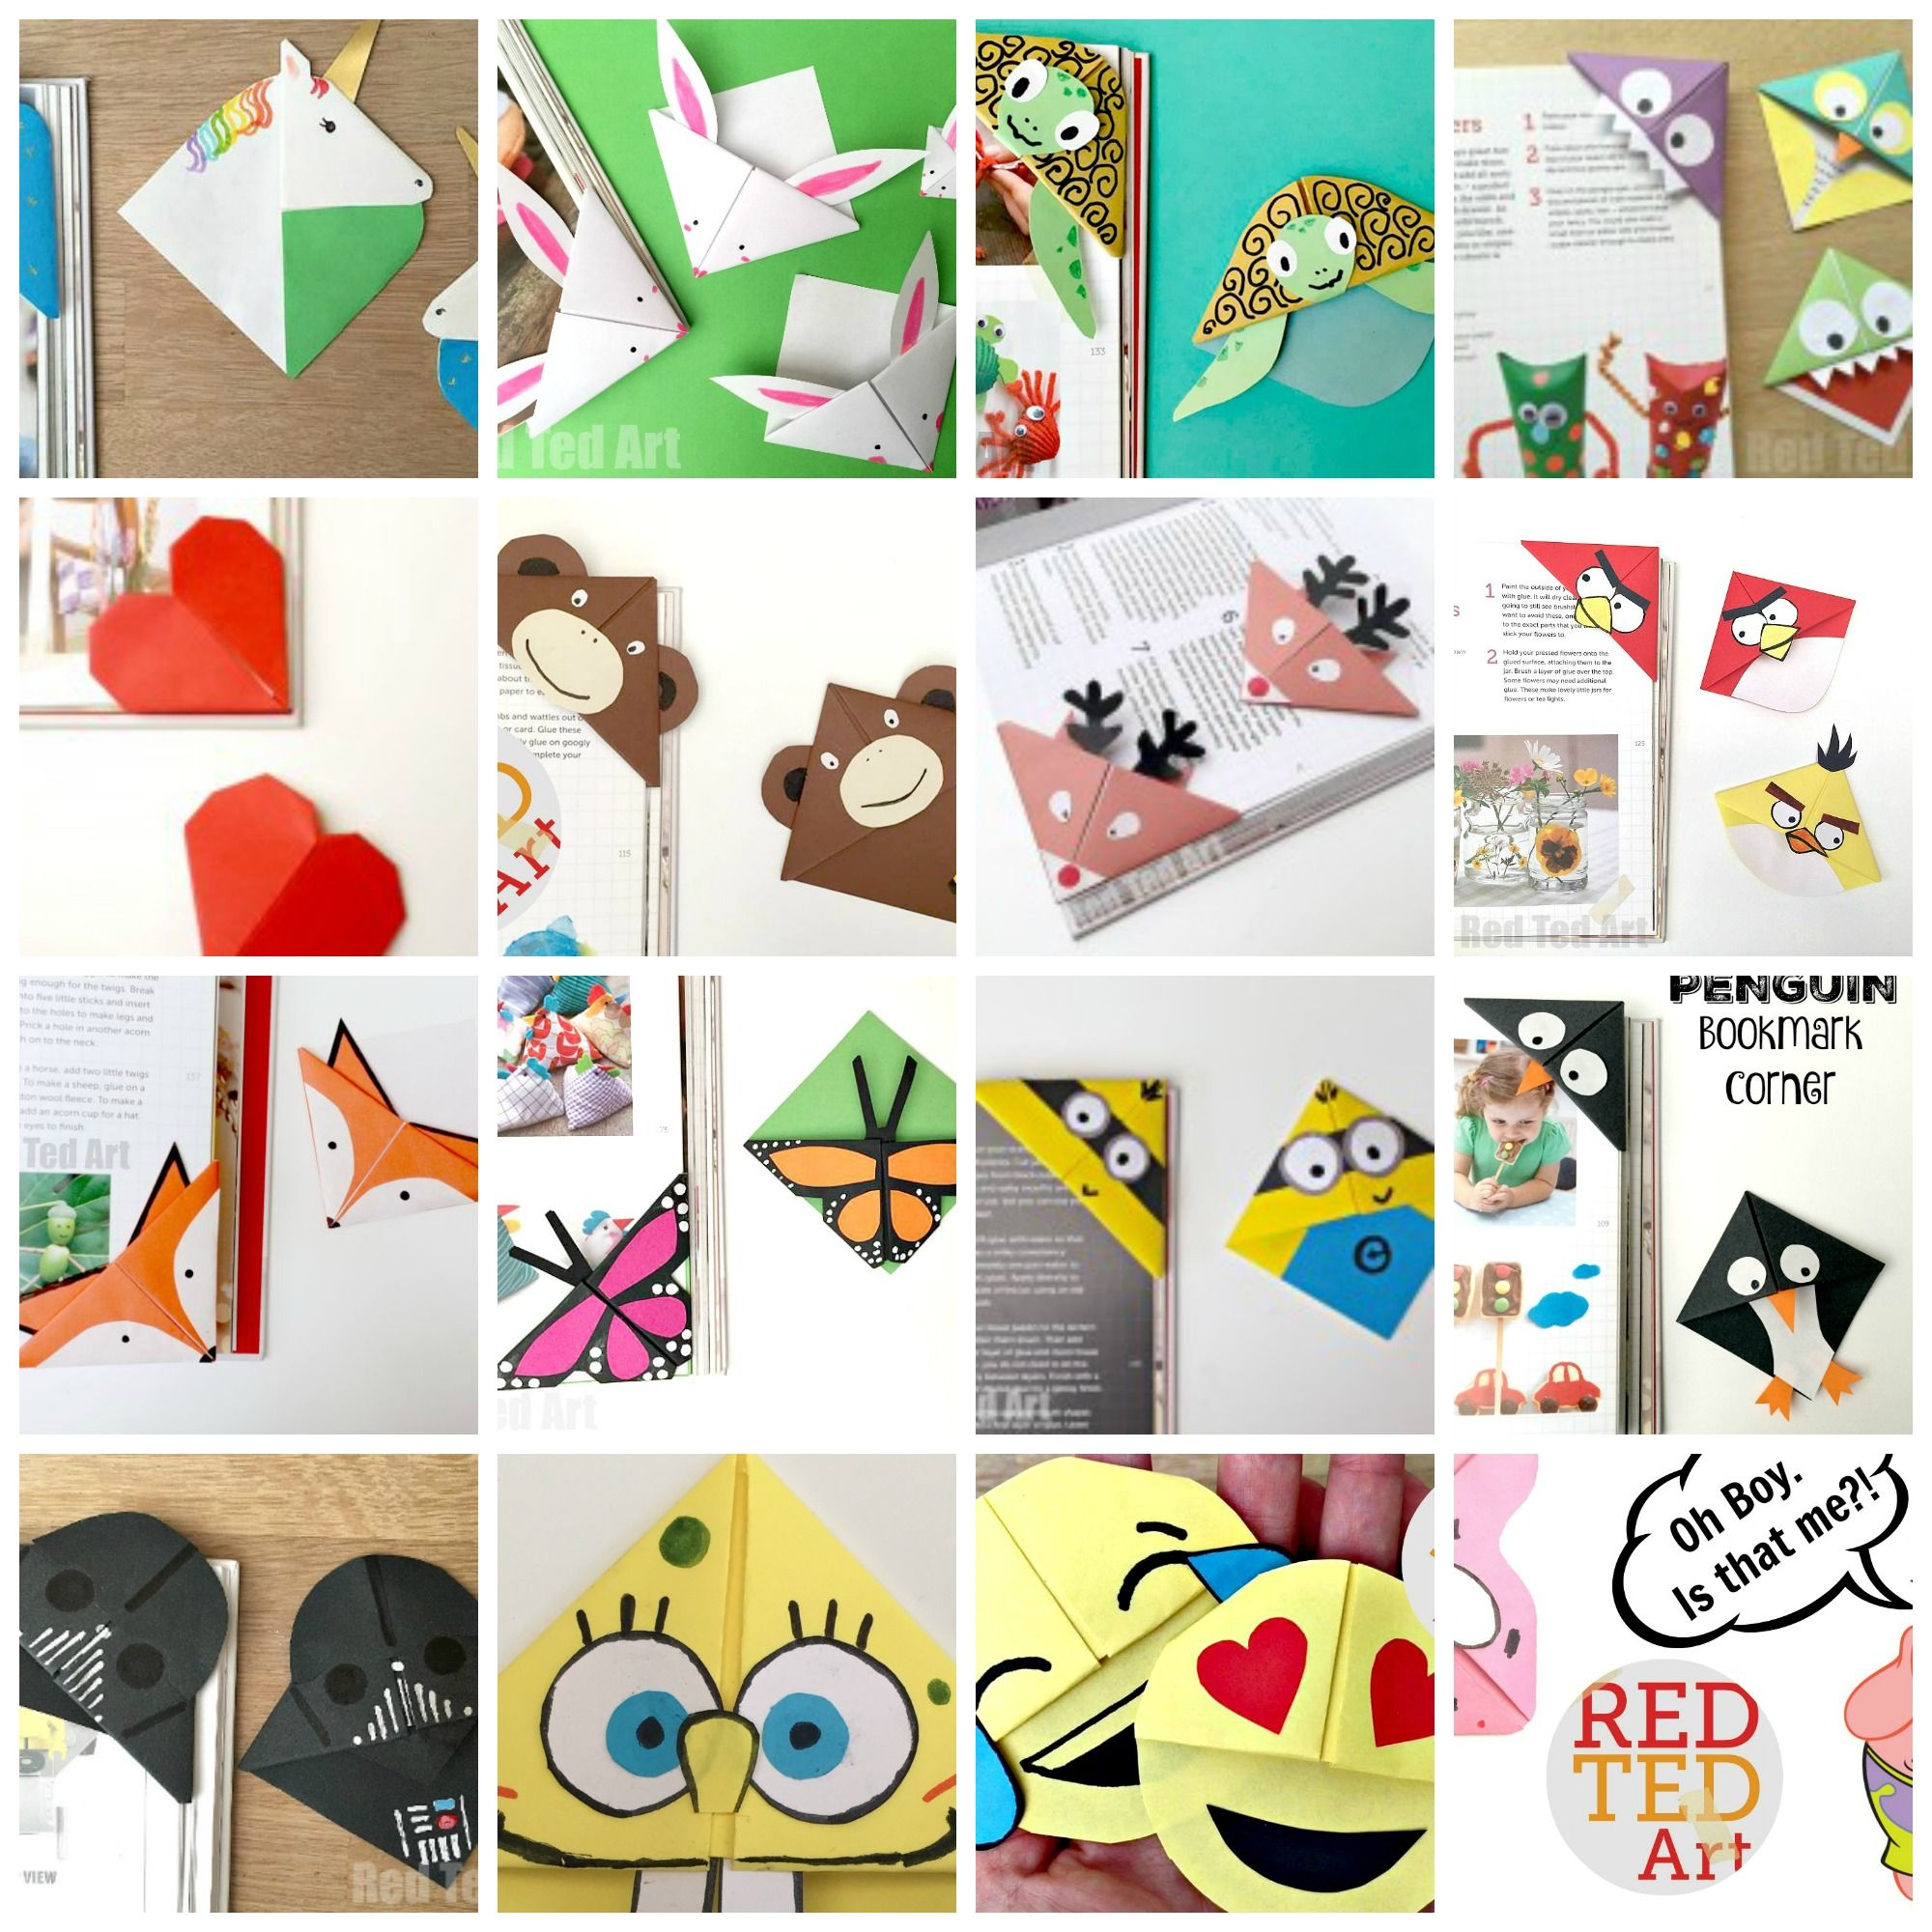 Some-of-the-best-Corner-Bookmark-designs-ever.-LOVE-LOVE-LOVE.jpg 2.000×2.000 piksel